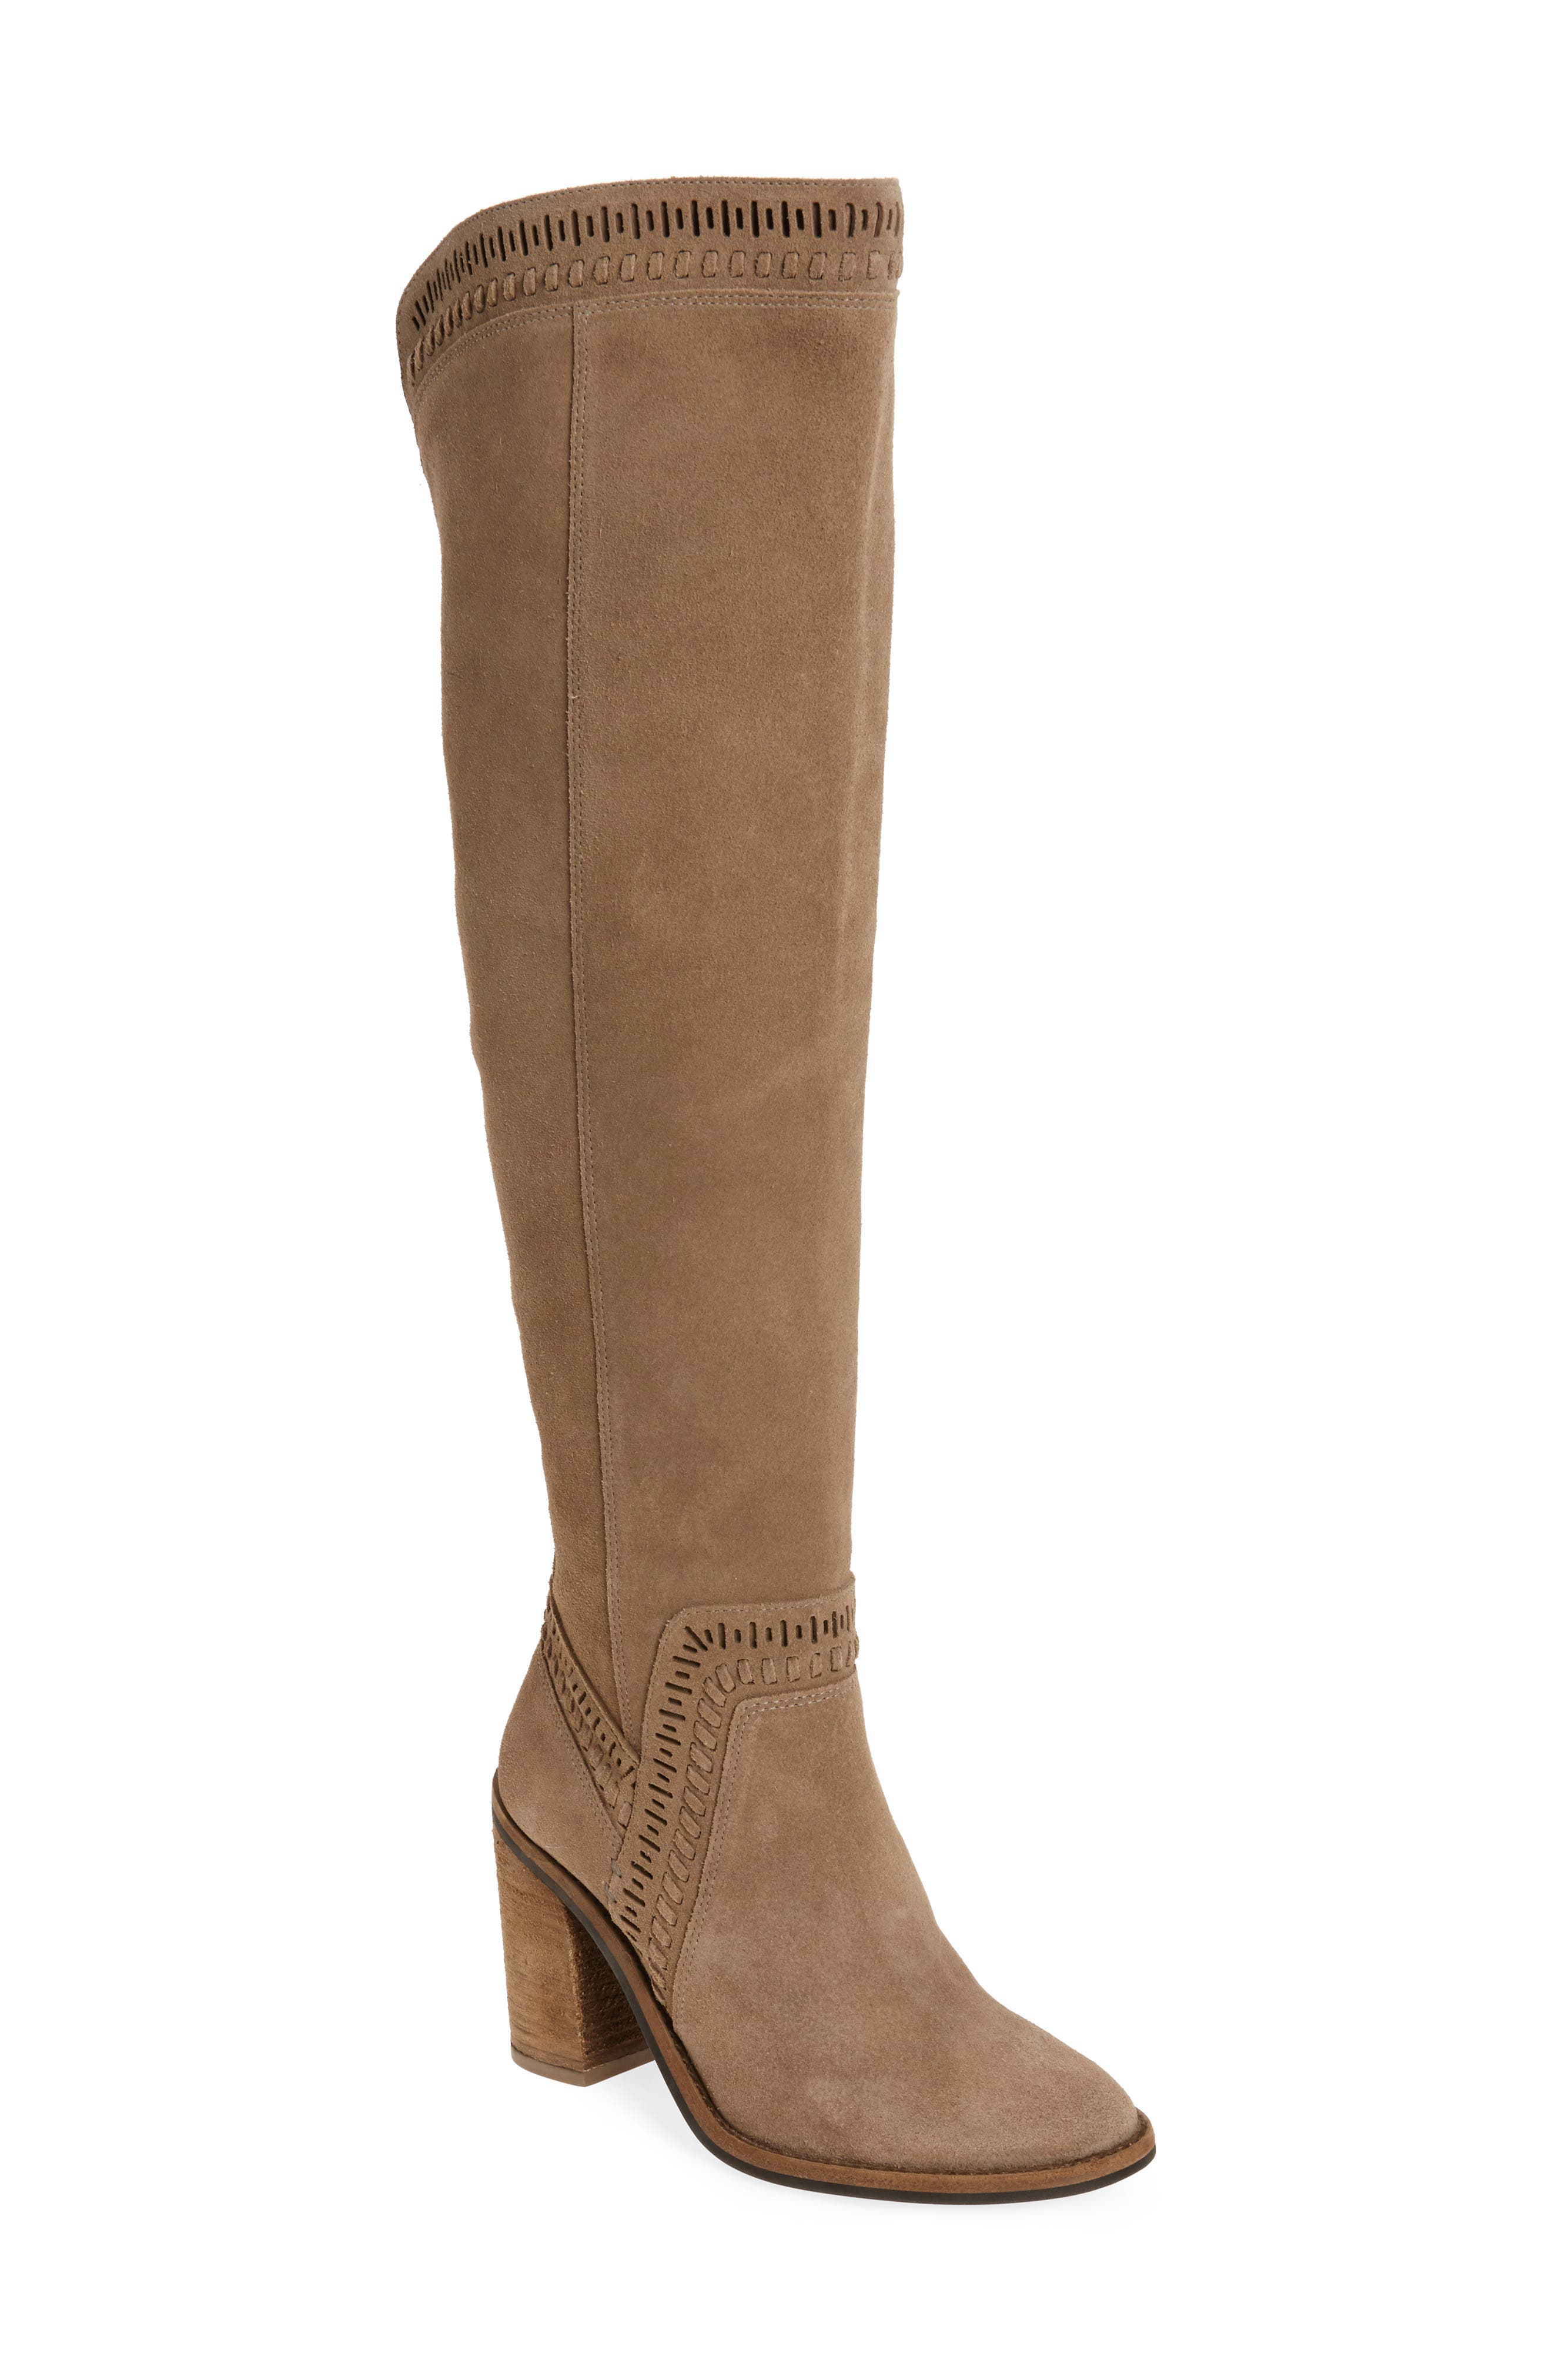 Madolee Over the Knee Boot,                             Main thumbnail 1, color,                             Foxy